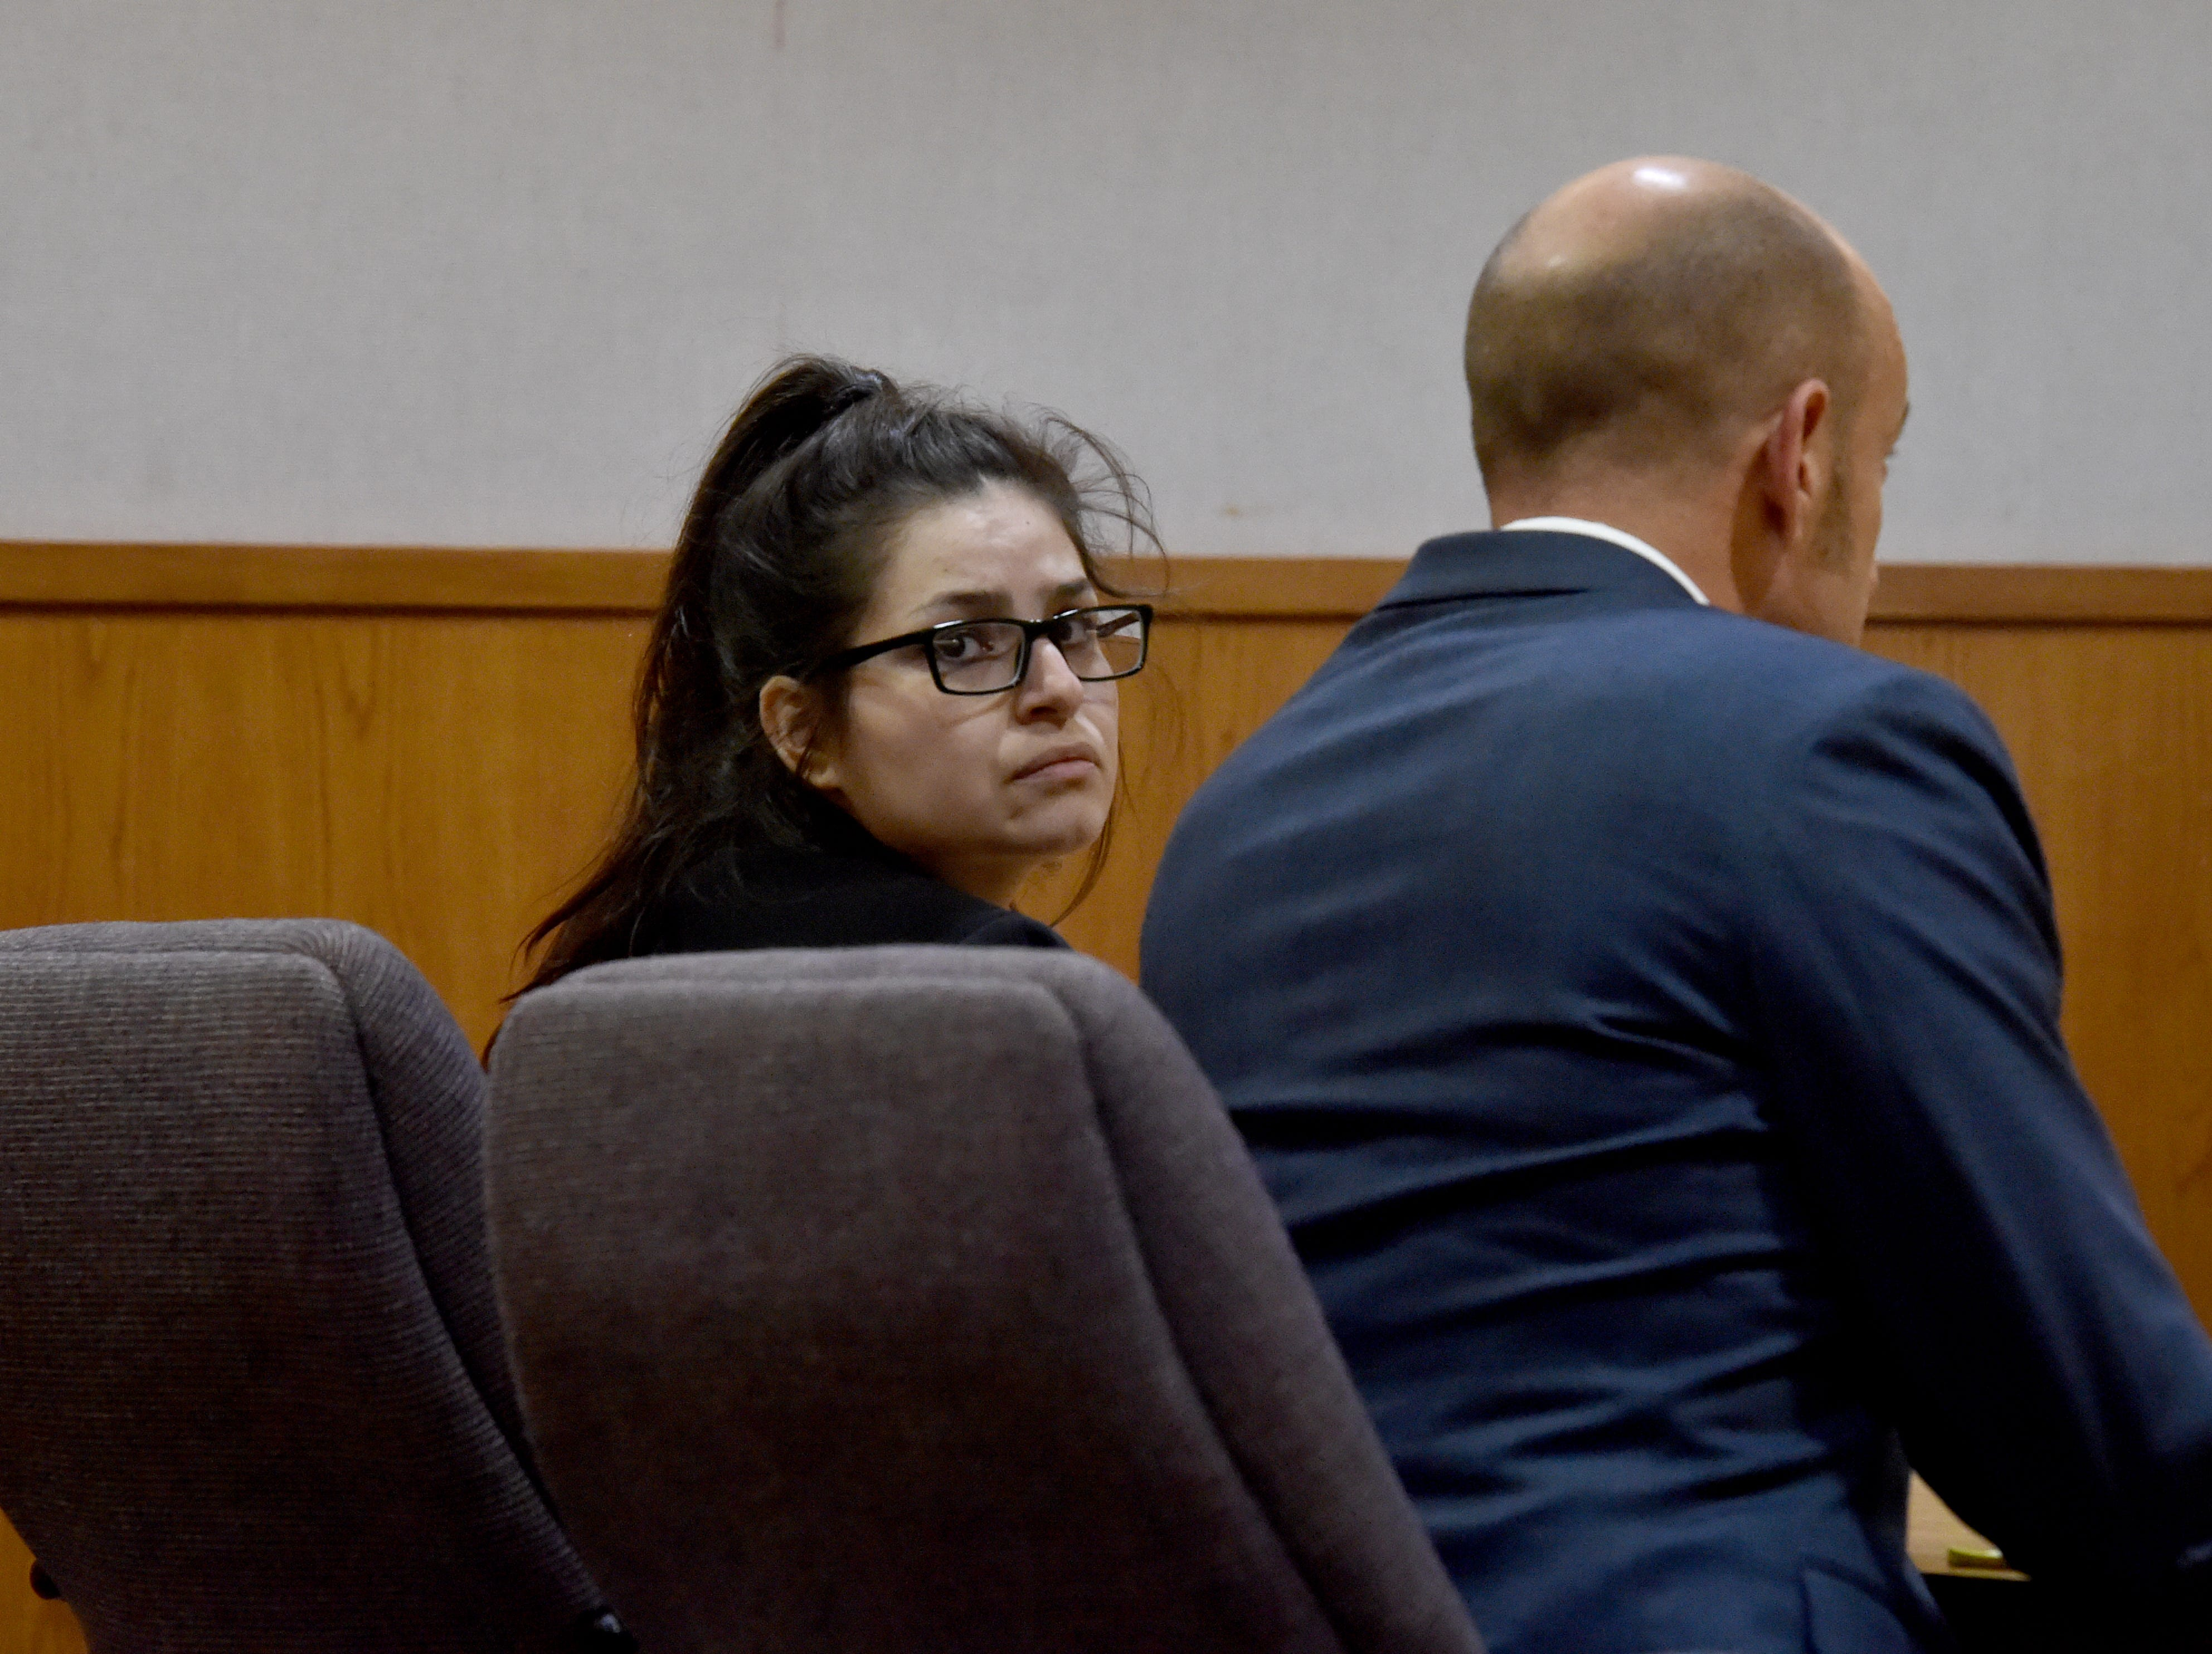 Mayra Chavez looks past her attorney after jurors found her guilty on Monday of the second-degree murder of her 3-year-old daughter Kimberly Lopez. Chavez was also found guilty of assault and torture charges.